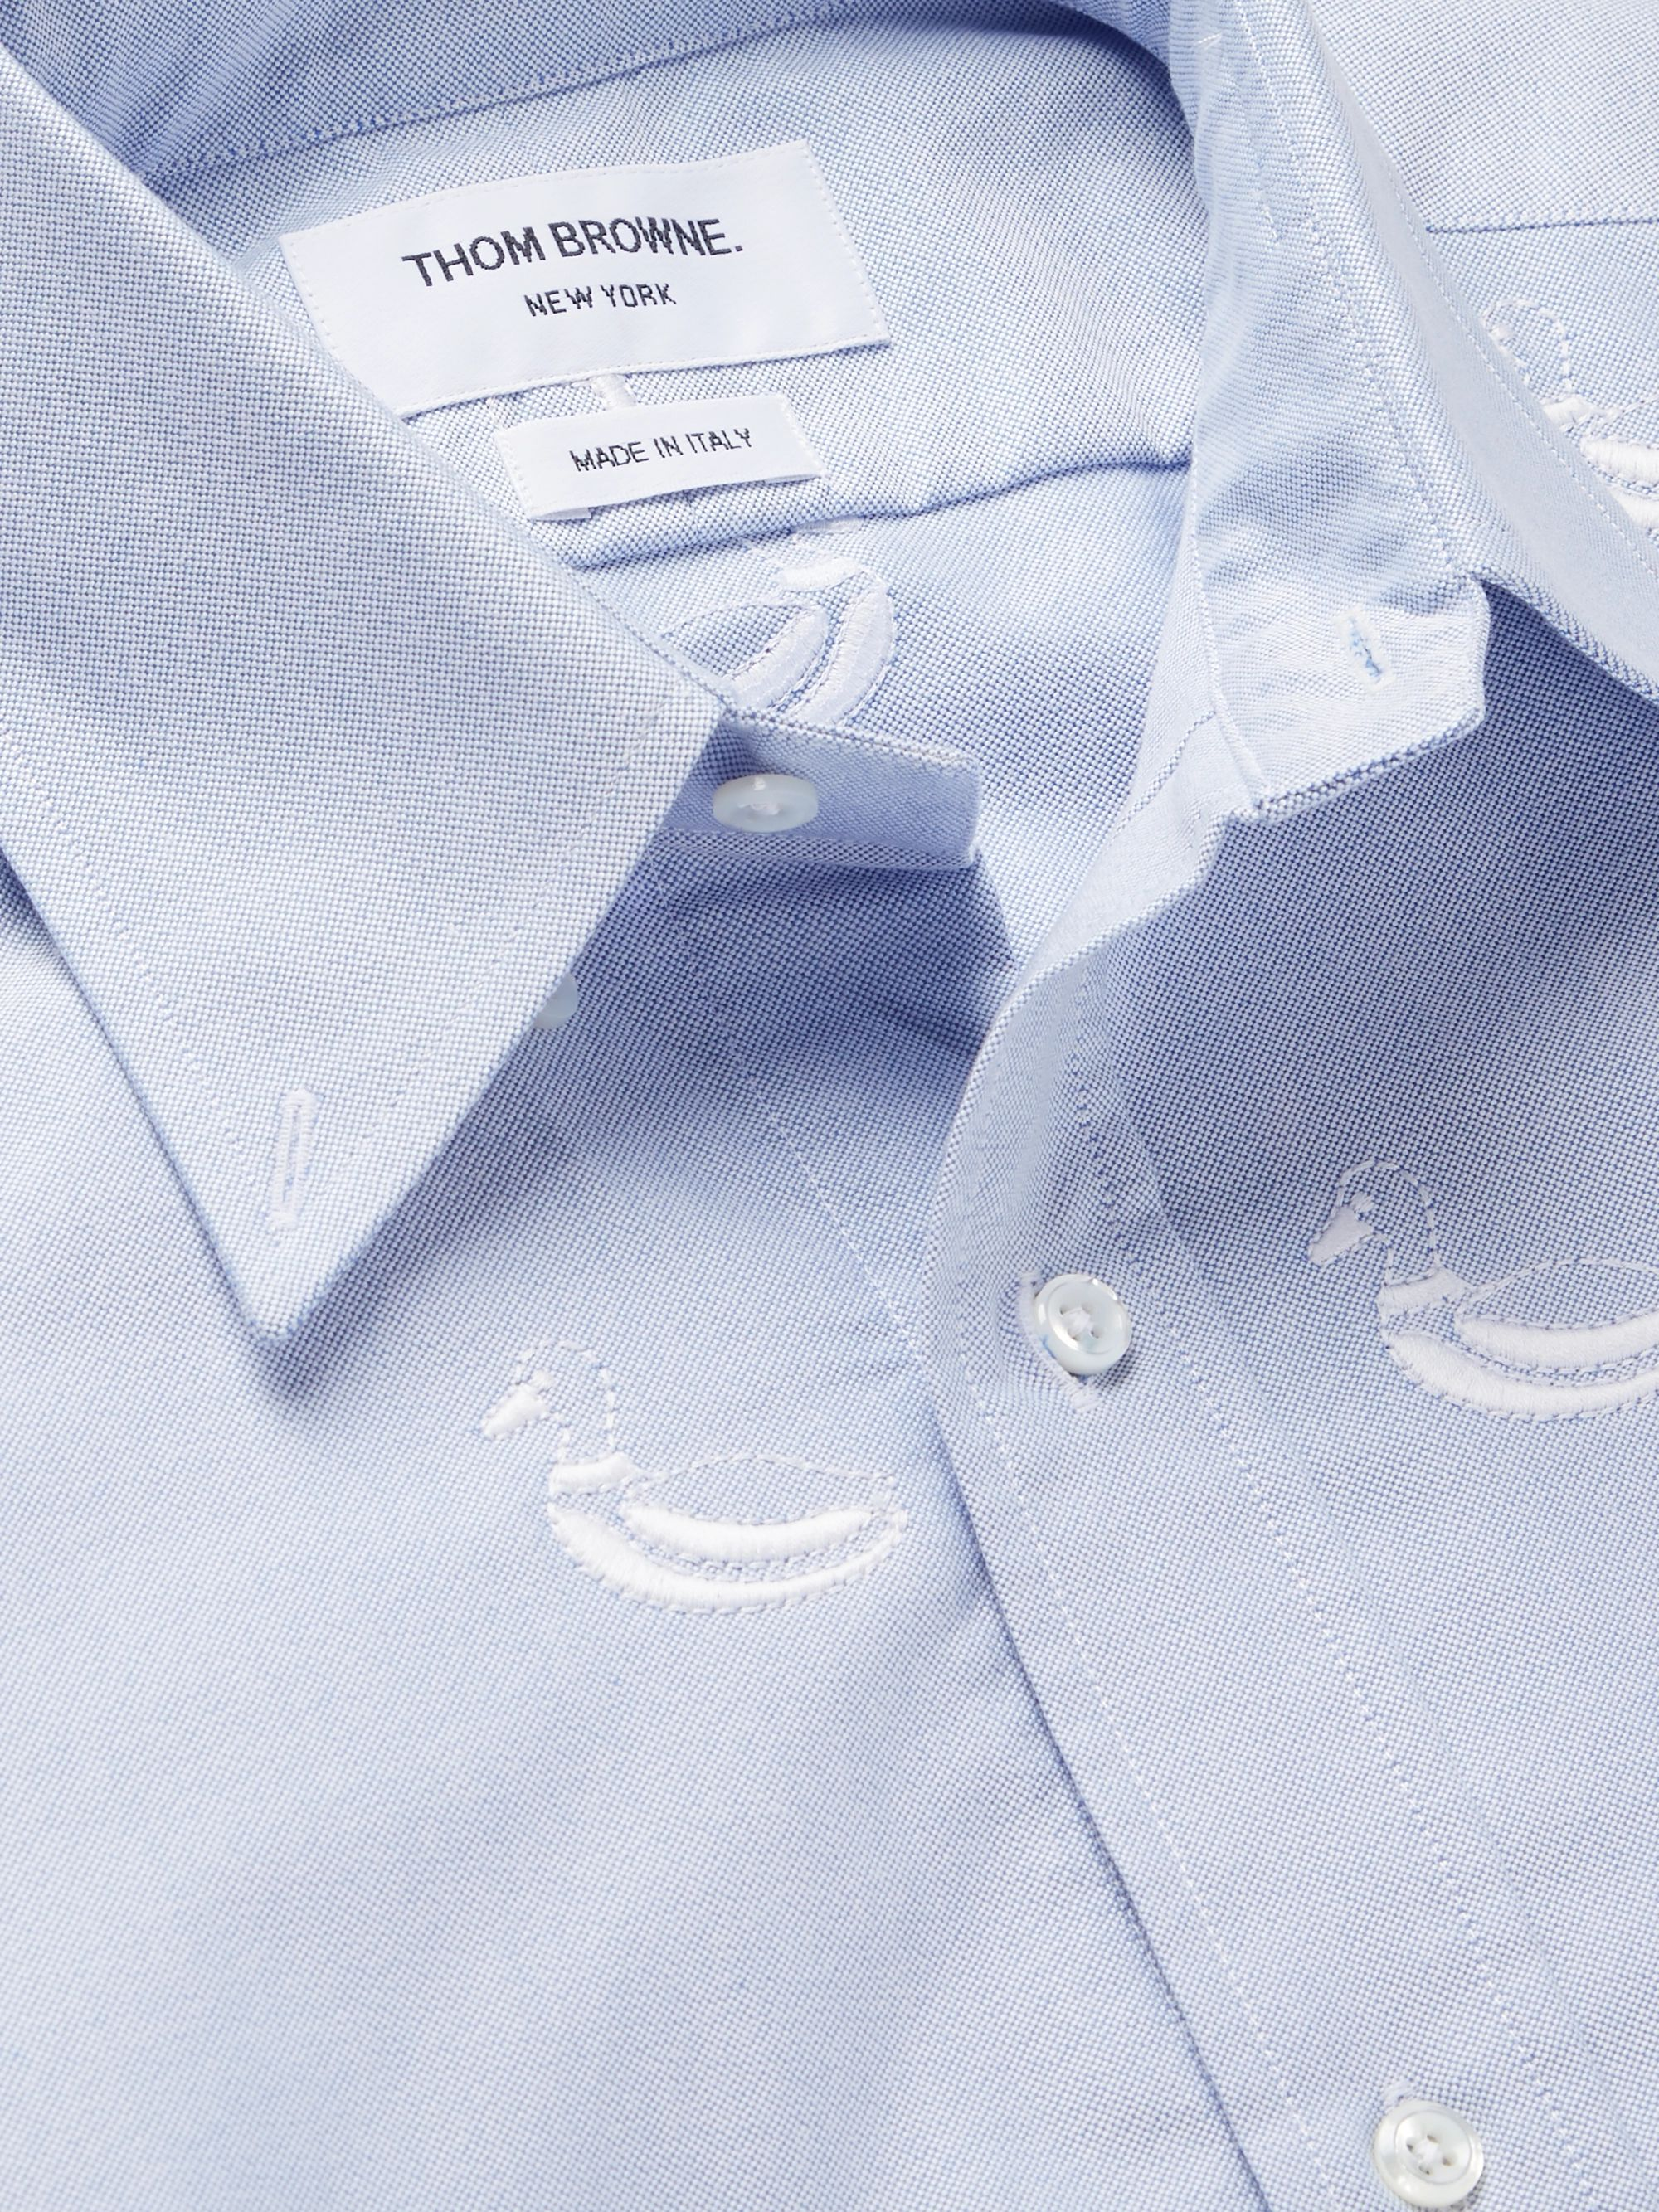 Thom Browne Button-Down Collar Embroidered Cotton Oxford Shirt